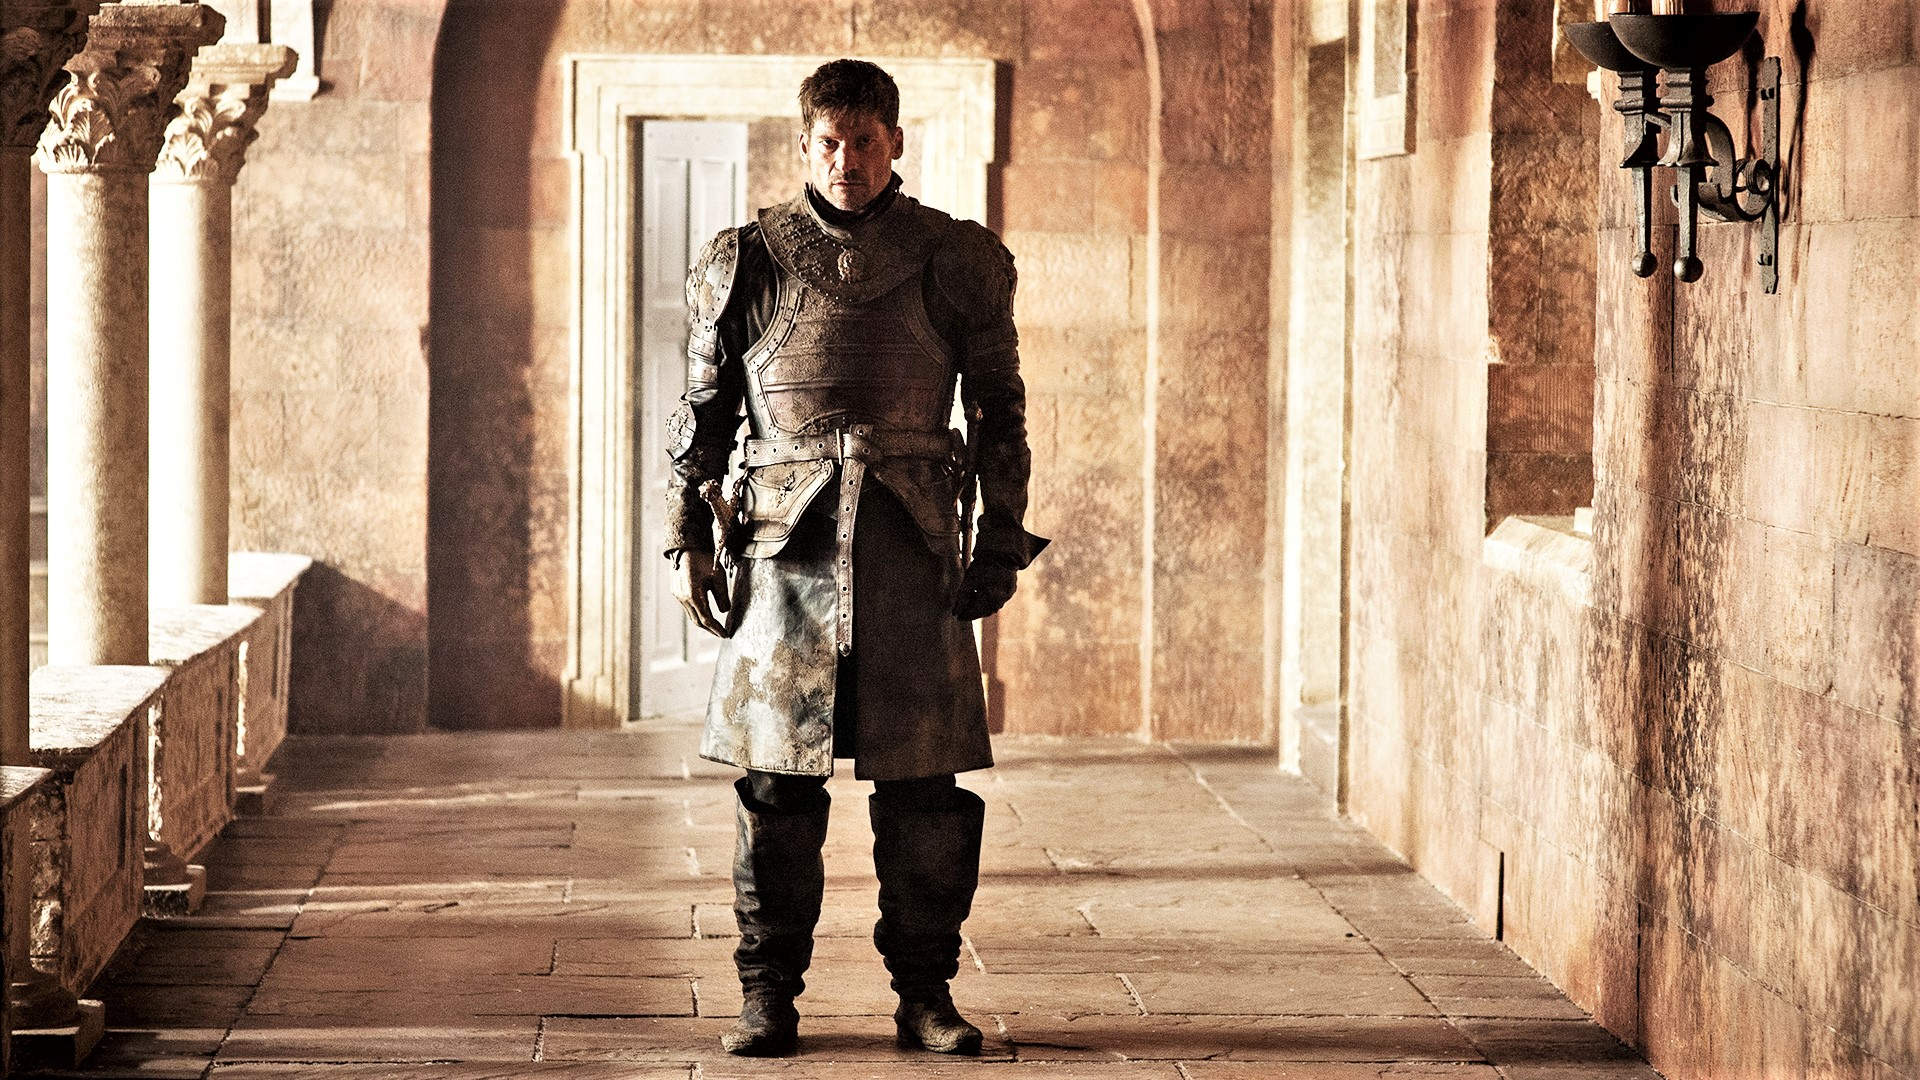 Jaime Lannister pondering whether or not he'll have to cancel his credit cards.